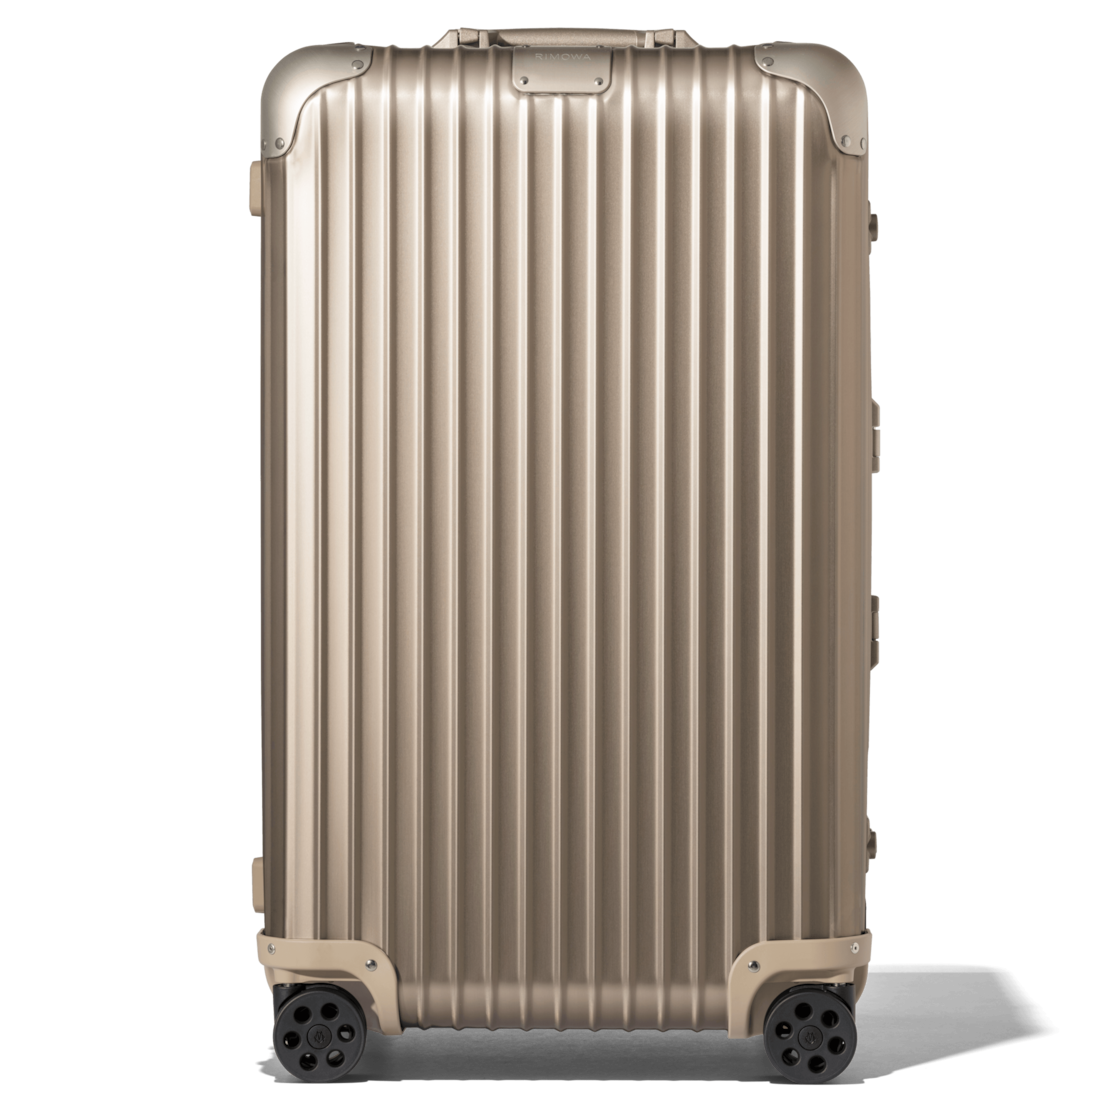 The Rimowa Original Trunk travel product recommended by Kalev Rudolph on Lifney.